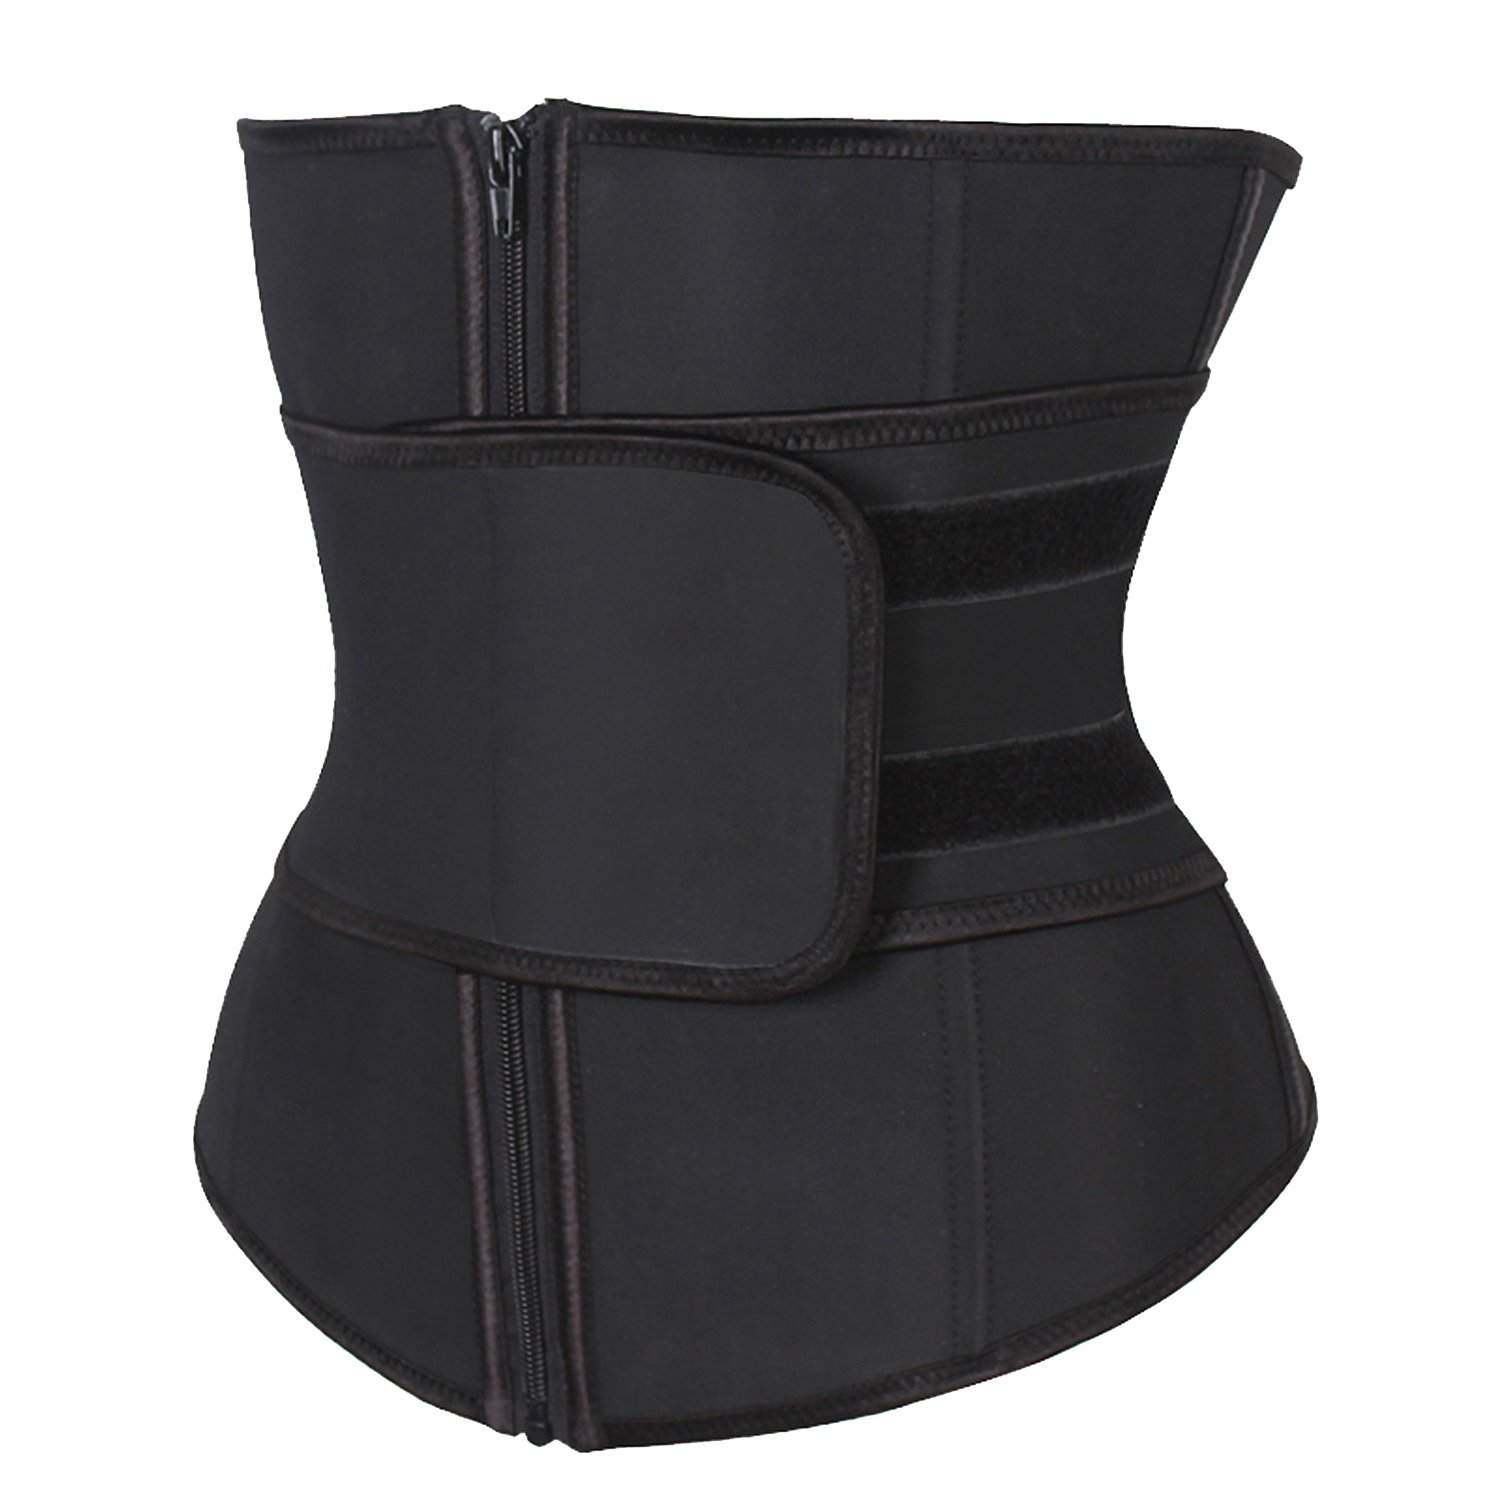 d099513bb008c KIWI RATA Abdominal Belt High Compression Zipper Neoprene Waist Trainer  Cincher Corset Body Fajas Sweat at Amazon Women s Clothing store